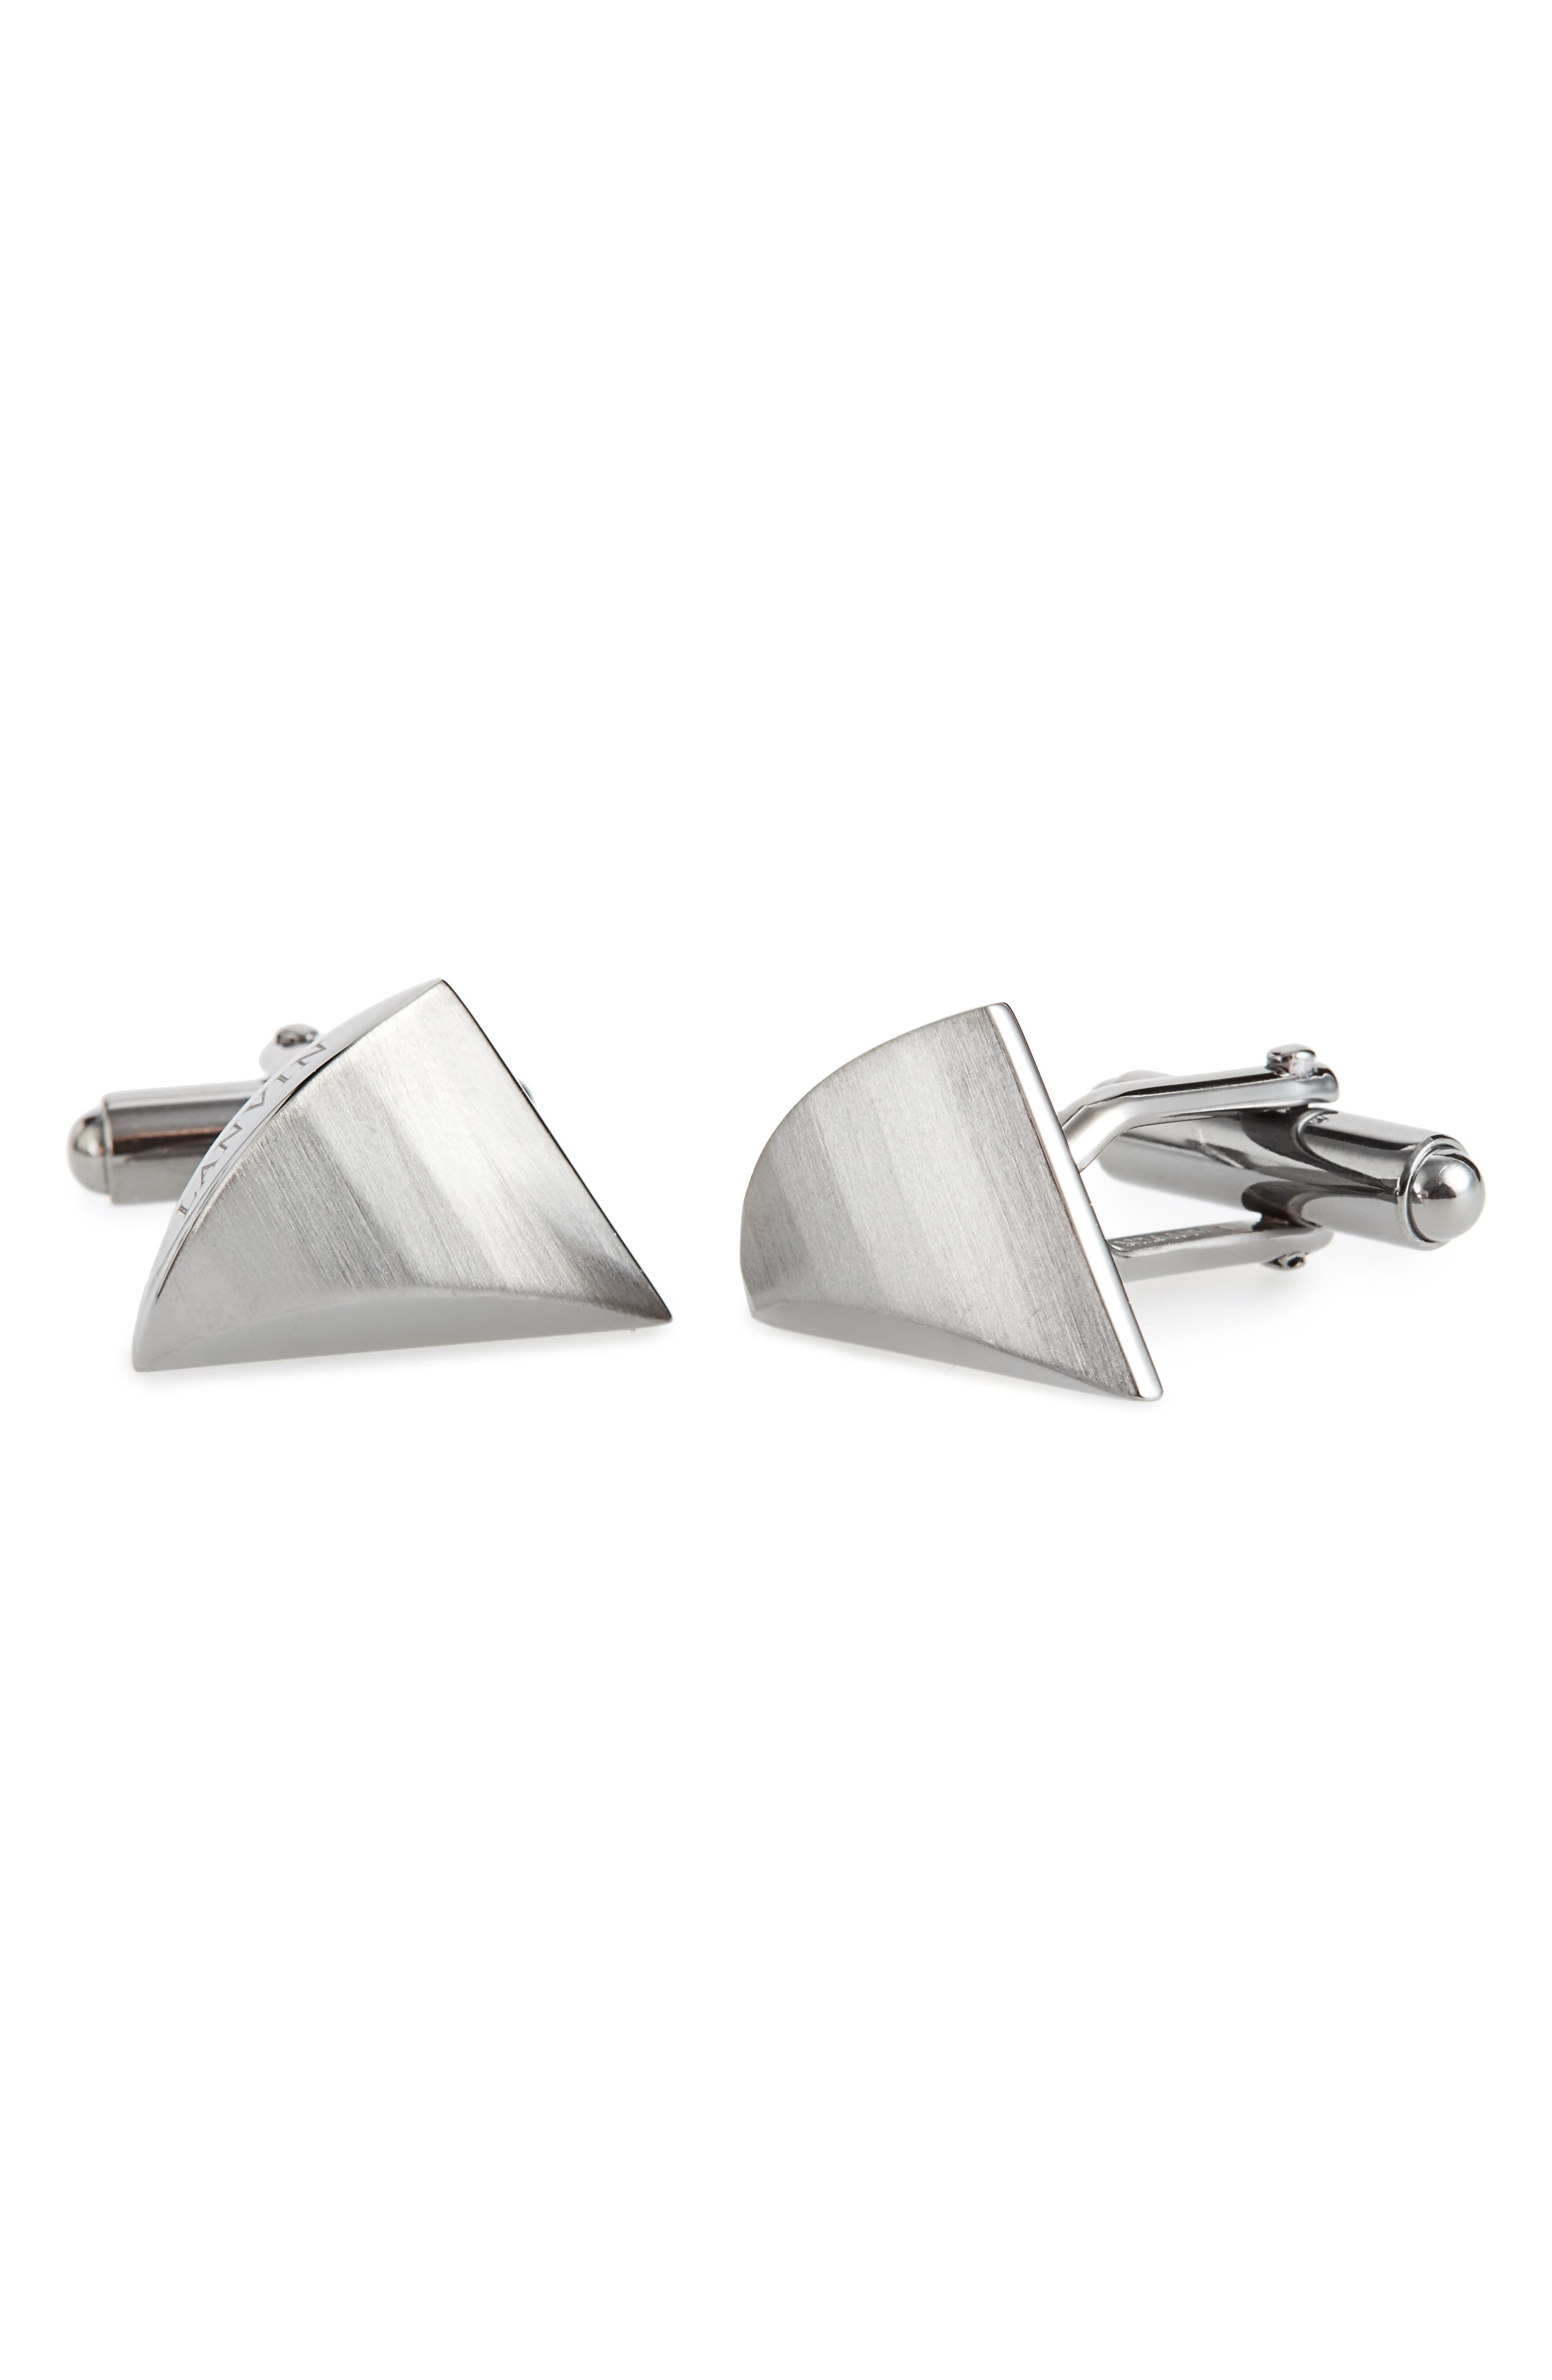 Faux Shark Tooth Cuff Links,                         Main,                         color, 040